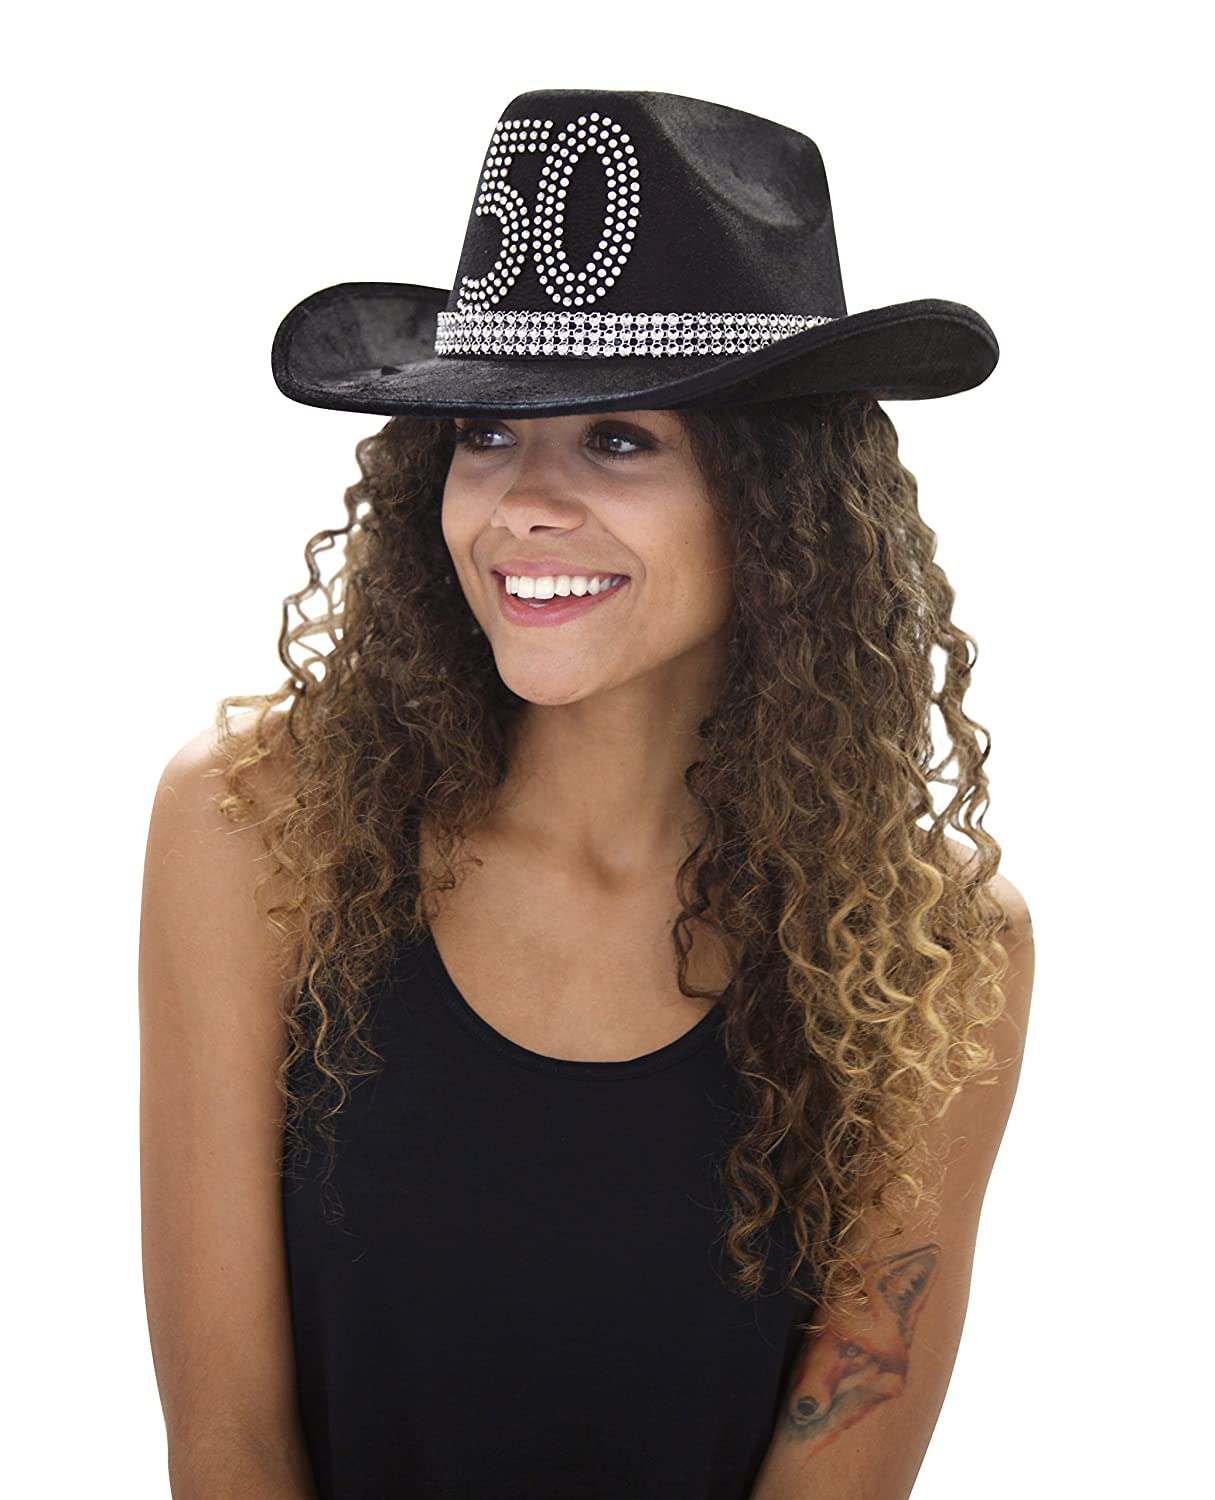 9996cf4943f Country Western 50th Birthday Rhinestone Cowboy Hat - Cowgirl 50th Birthday  Party Decorations   Supplies - Black -  Amazon.co.uk  Clothing